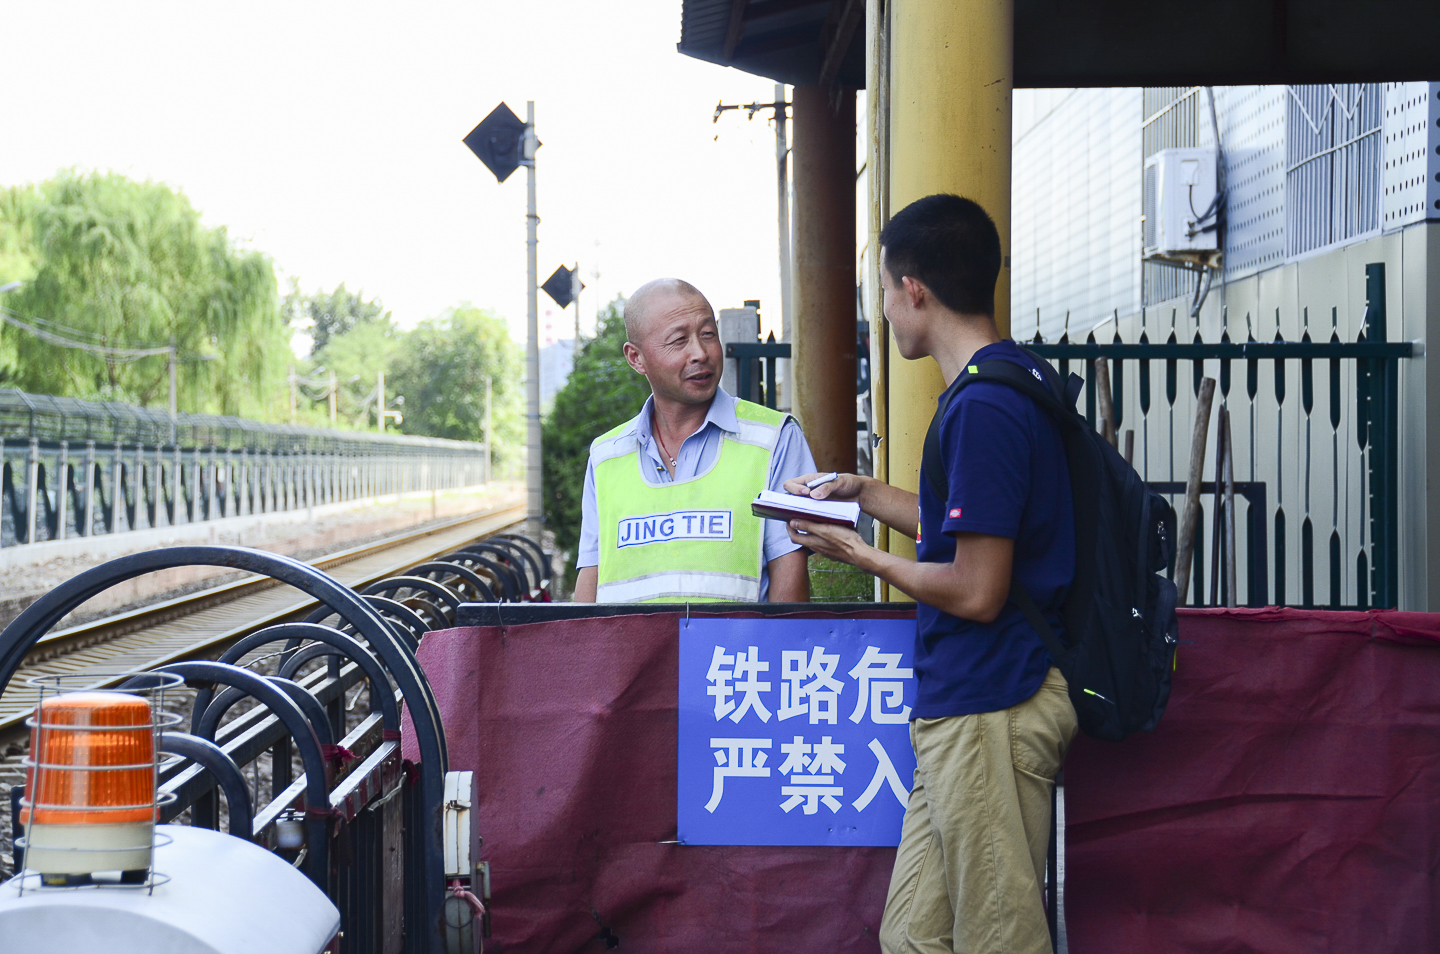 Student conducts fieldwork in Beijing by interviewing train station guard.